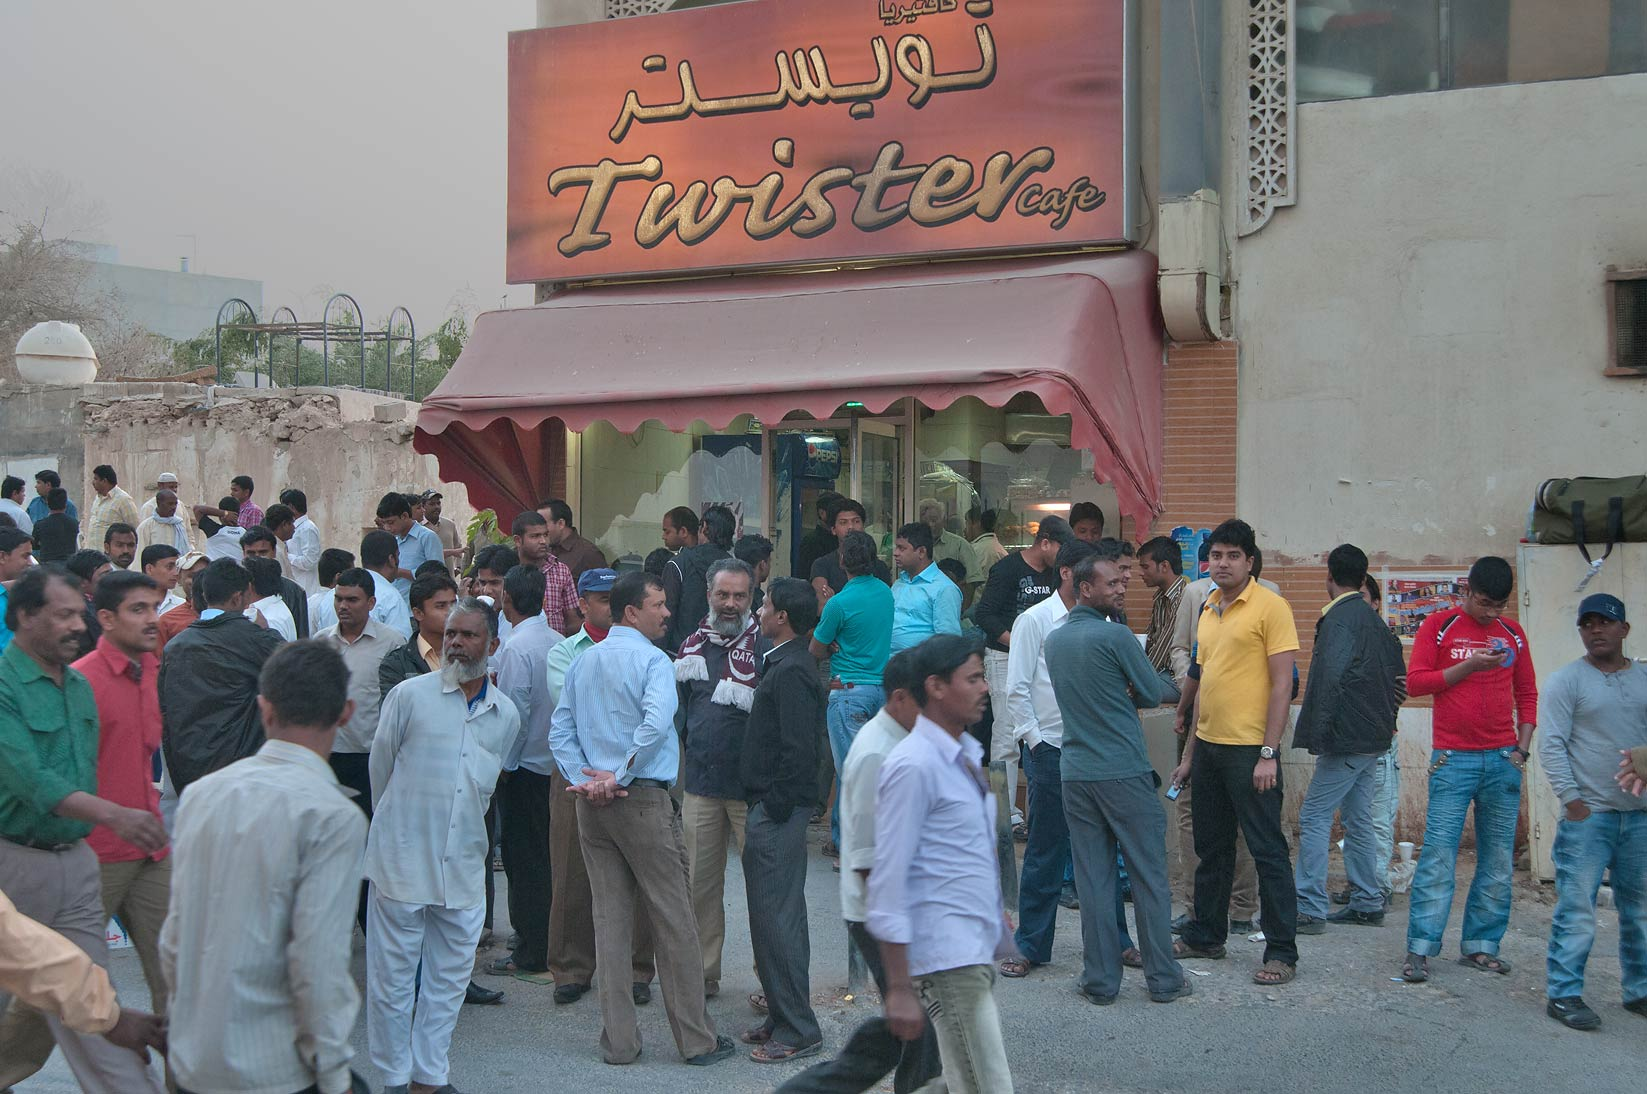 Gathering near Twister Cafe in Al Najada Souq on Friday evening. Doha, Qatar